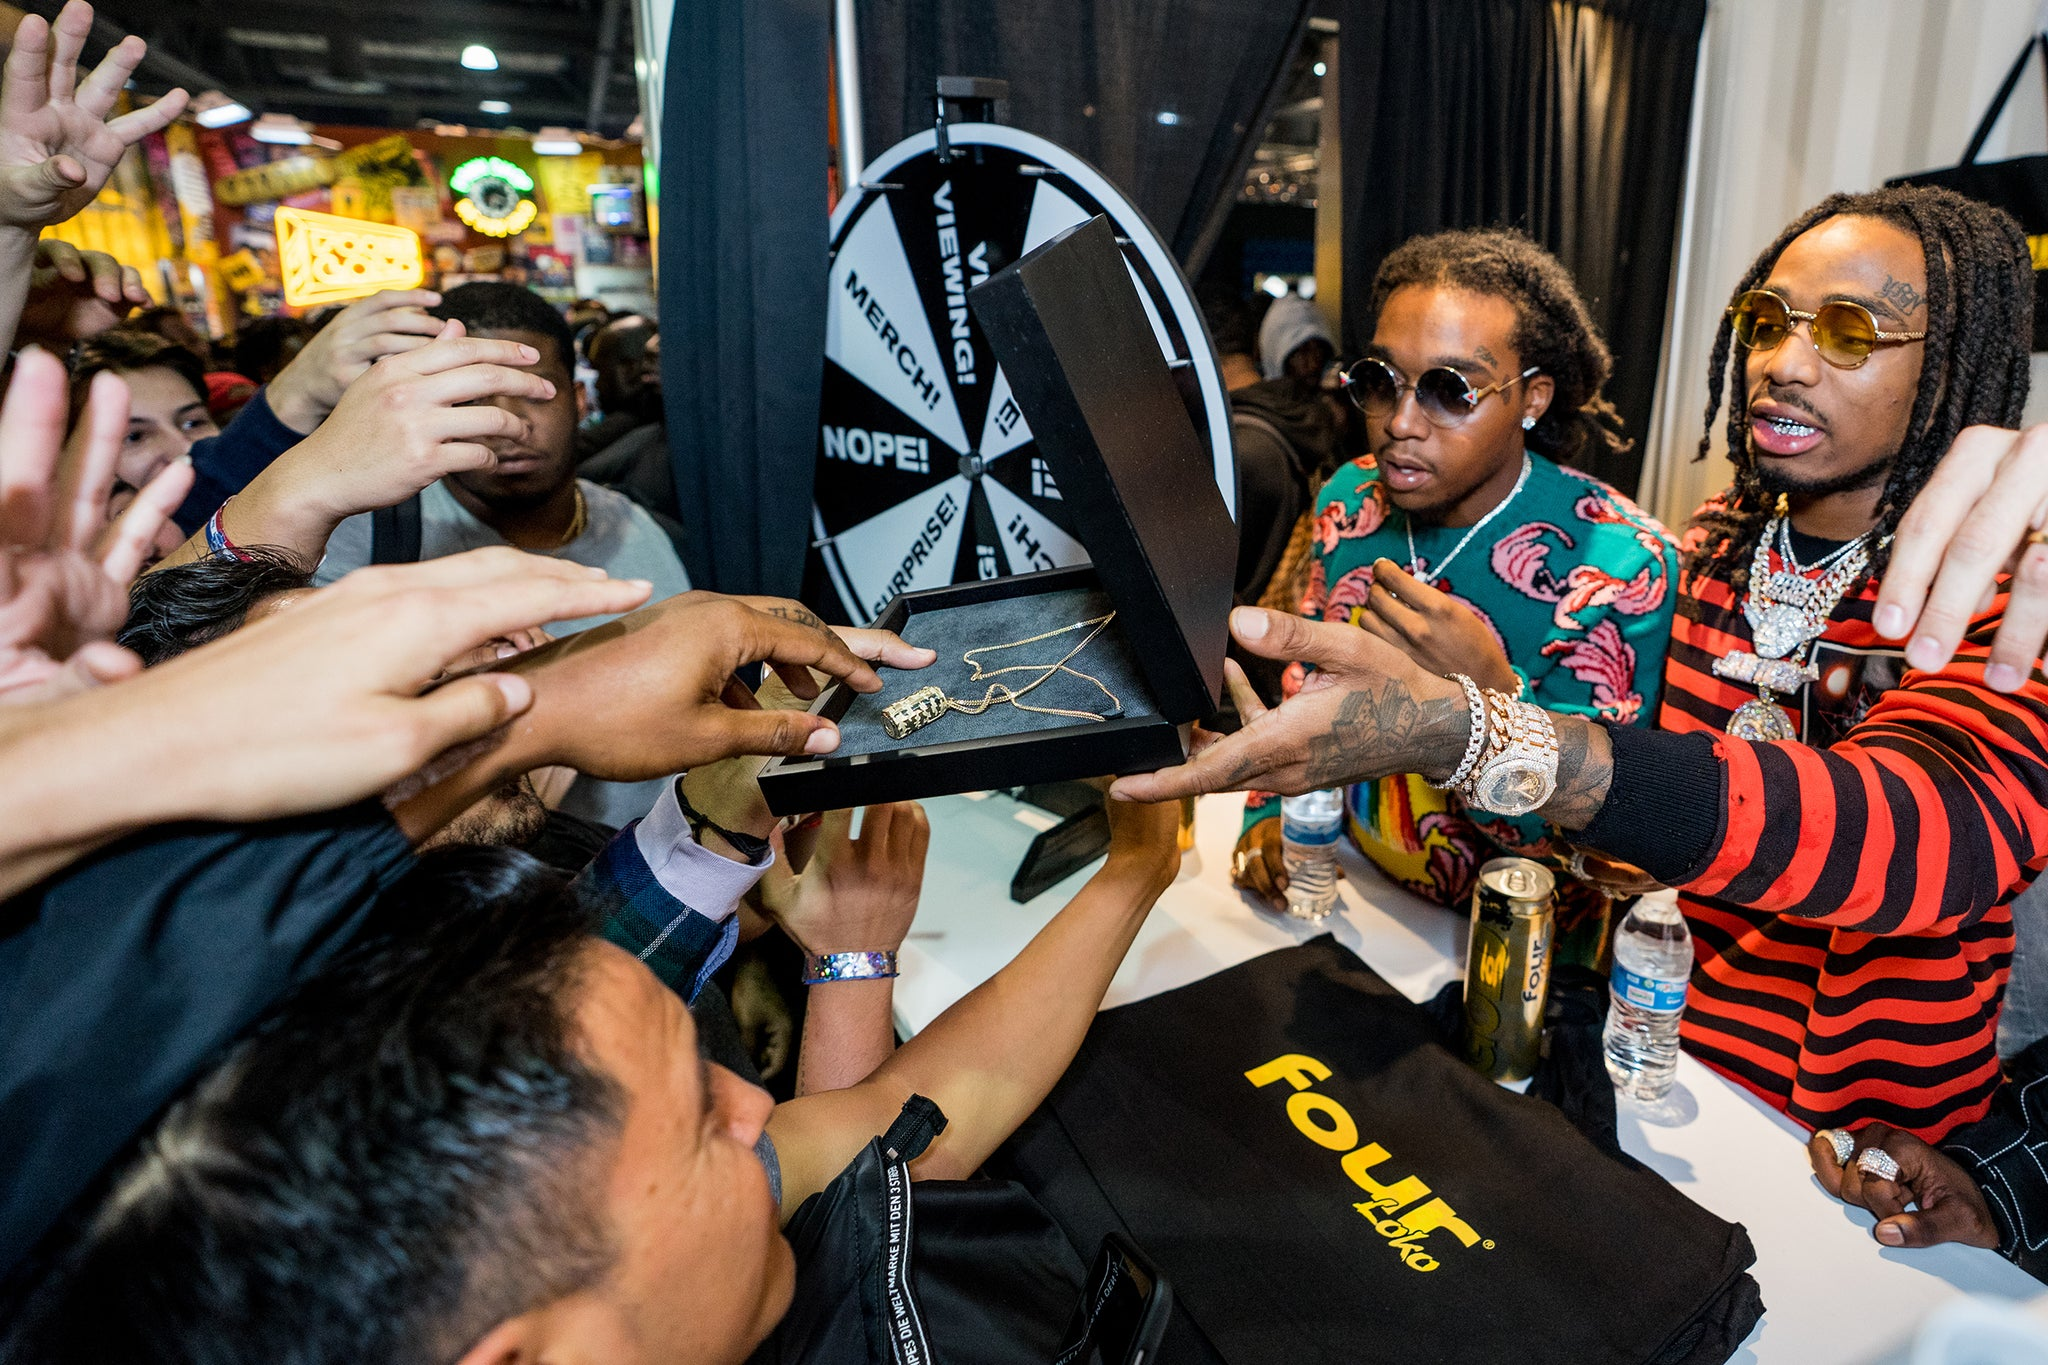 Couldn't have asked for a better photo from Complexcon.